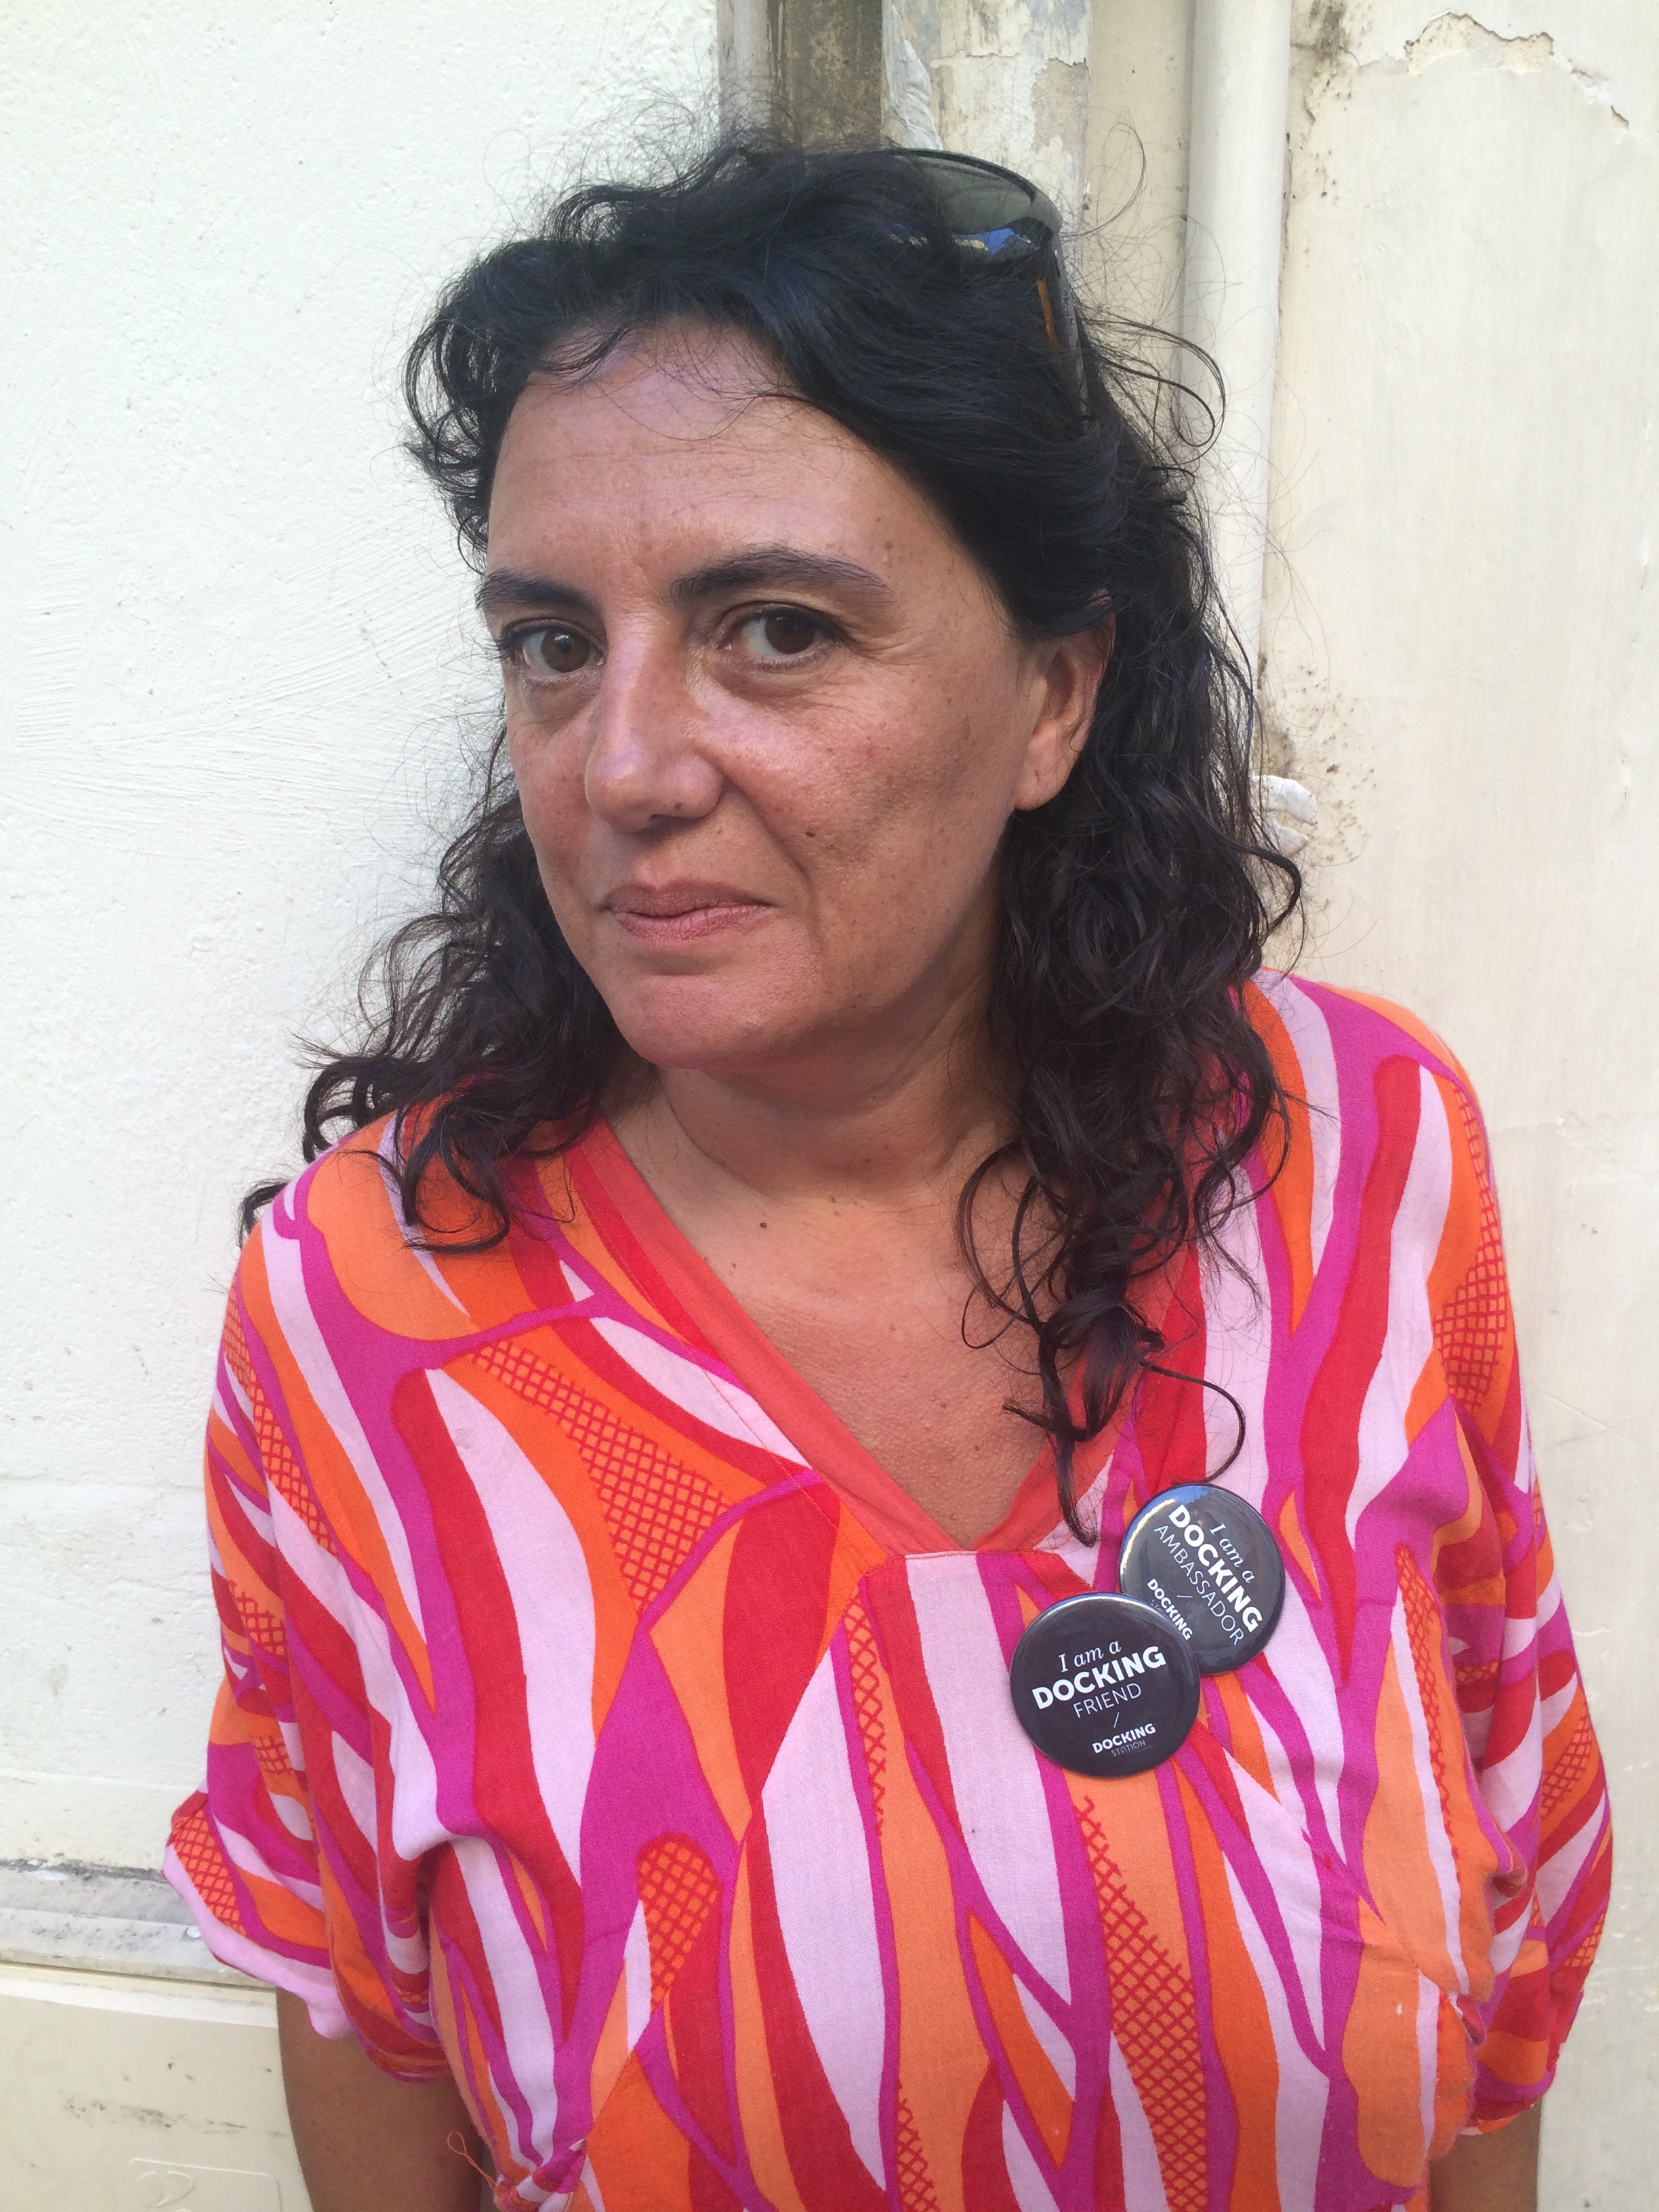 NATHALIE BELAYCHE    Founder of Food For Your Eyes, independent curator, producer and art consultant